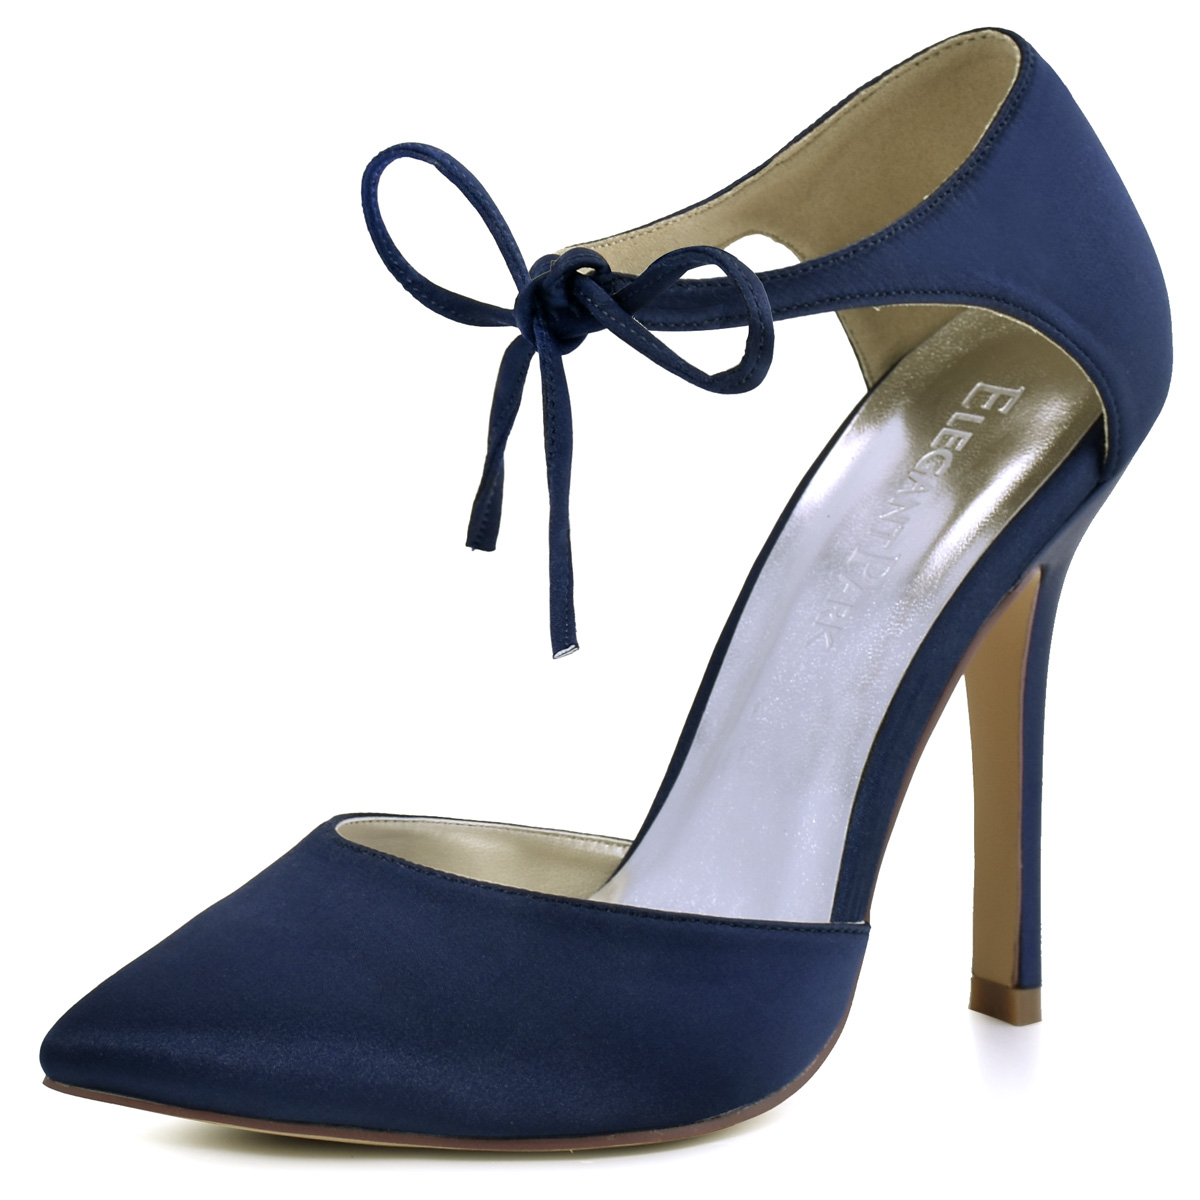 Hc1610 navy high heel wedding dress shoes pointed toe for Heels for wedding dress